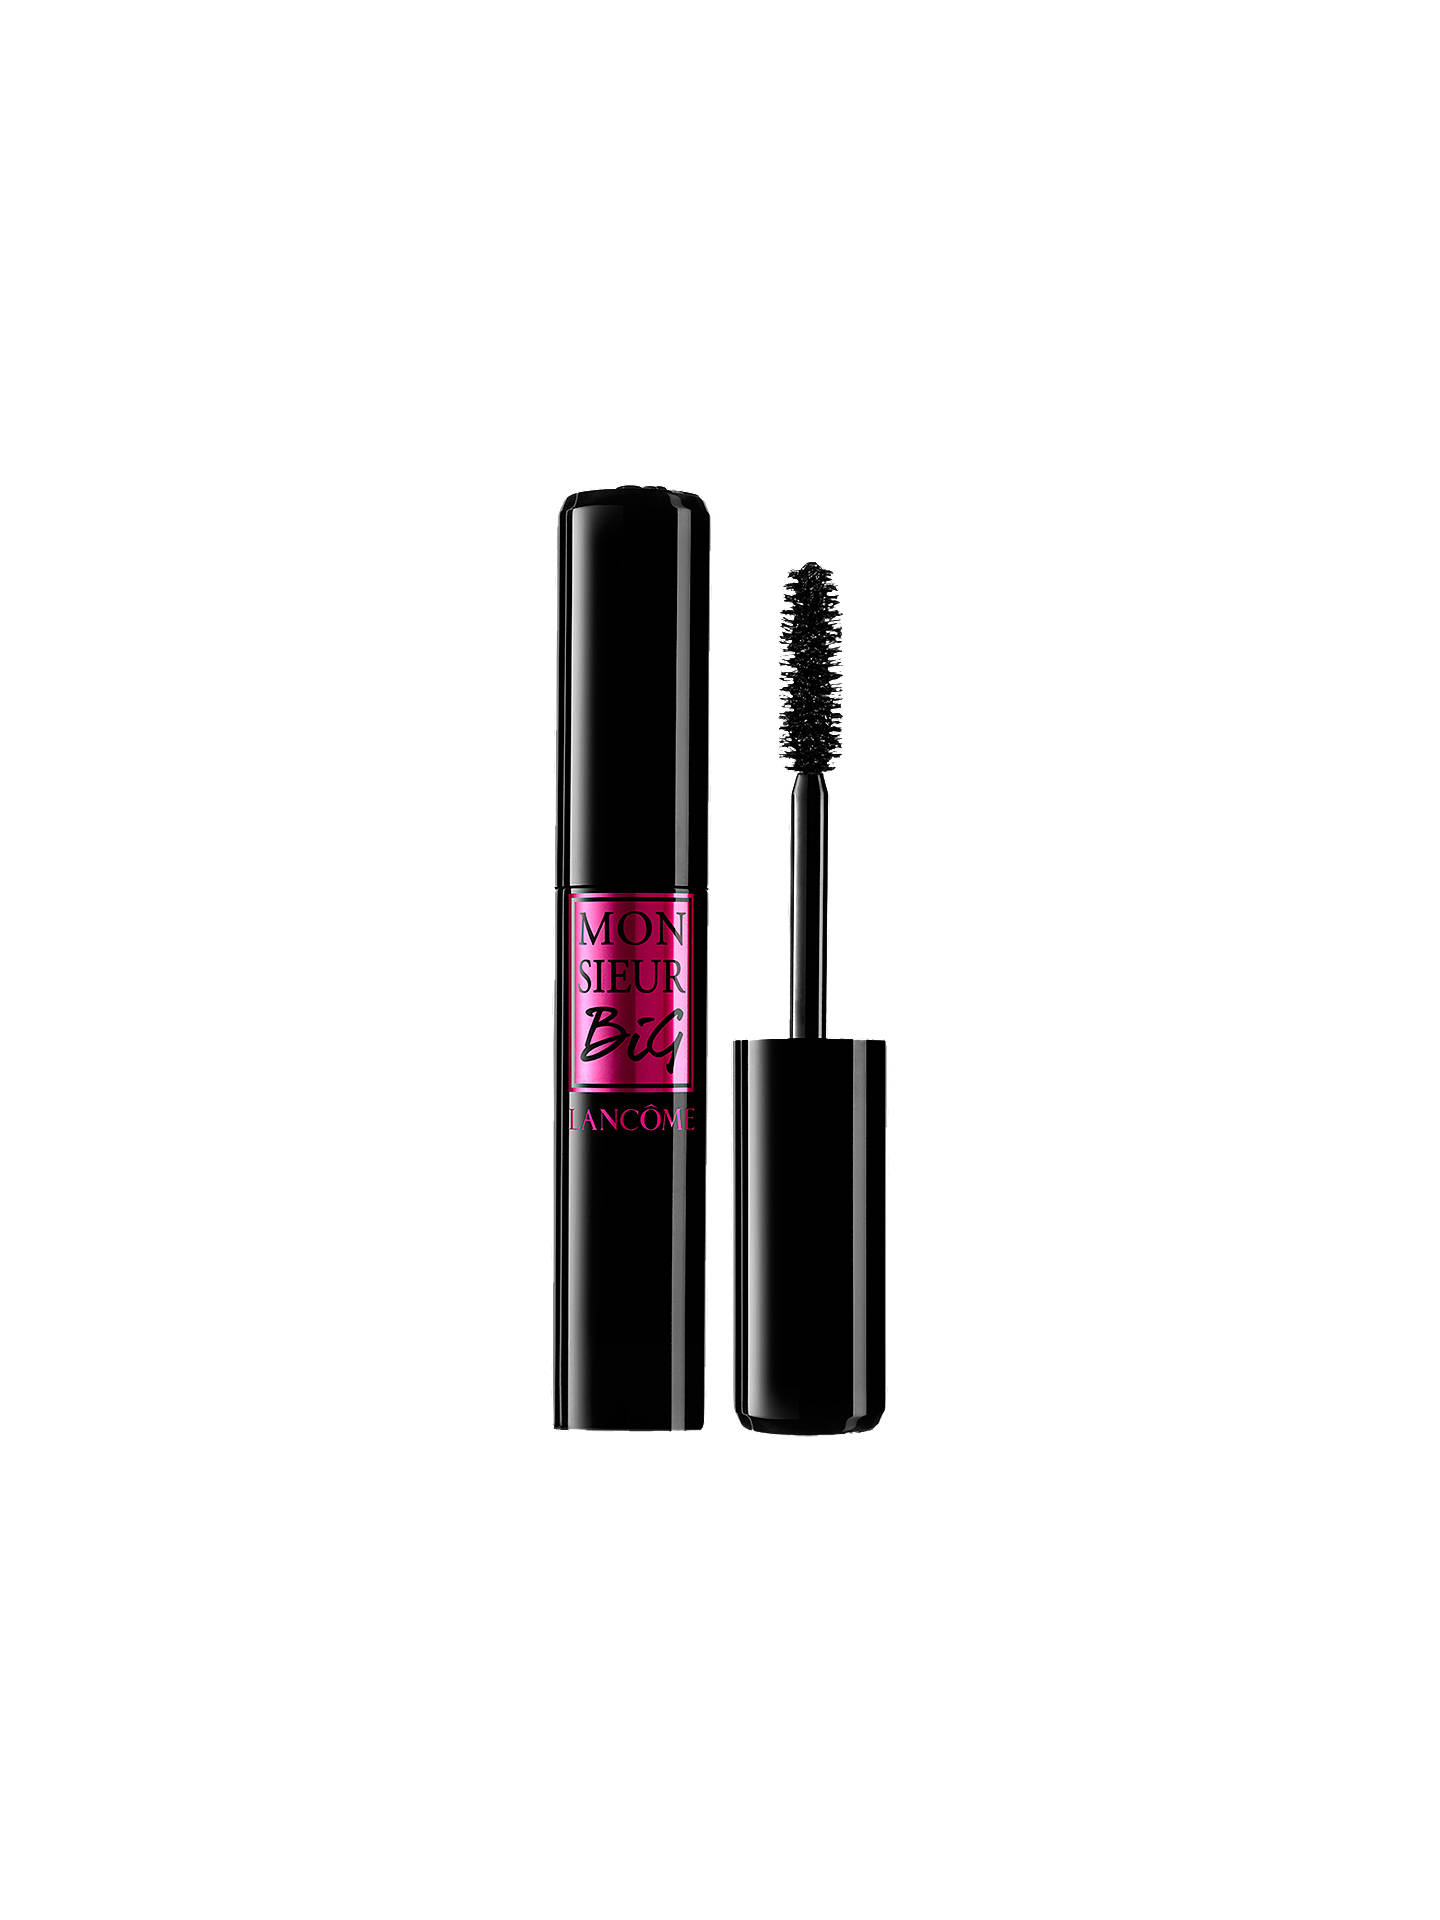 1b07e0869c1 Buy Lancôme Monsieur Big Mascara, 01 Big Is The New Black Online at  johnlewis.